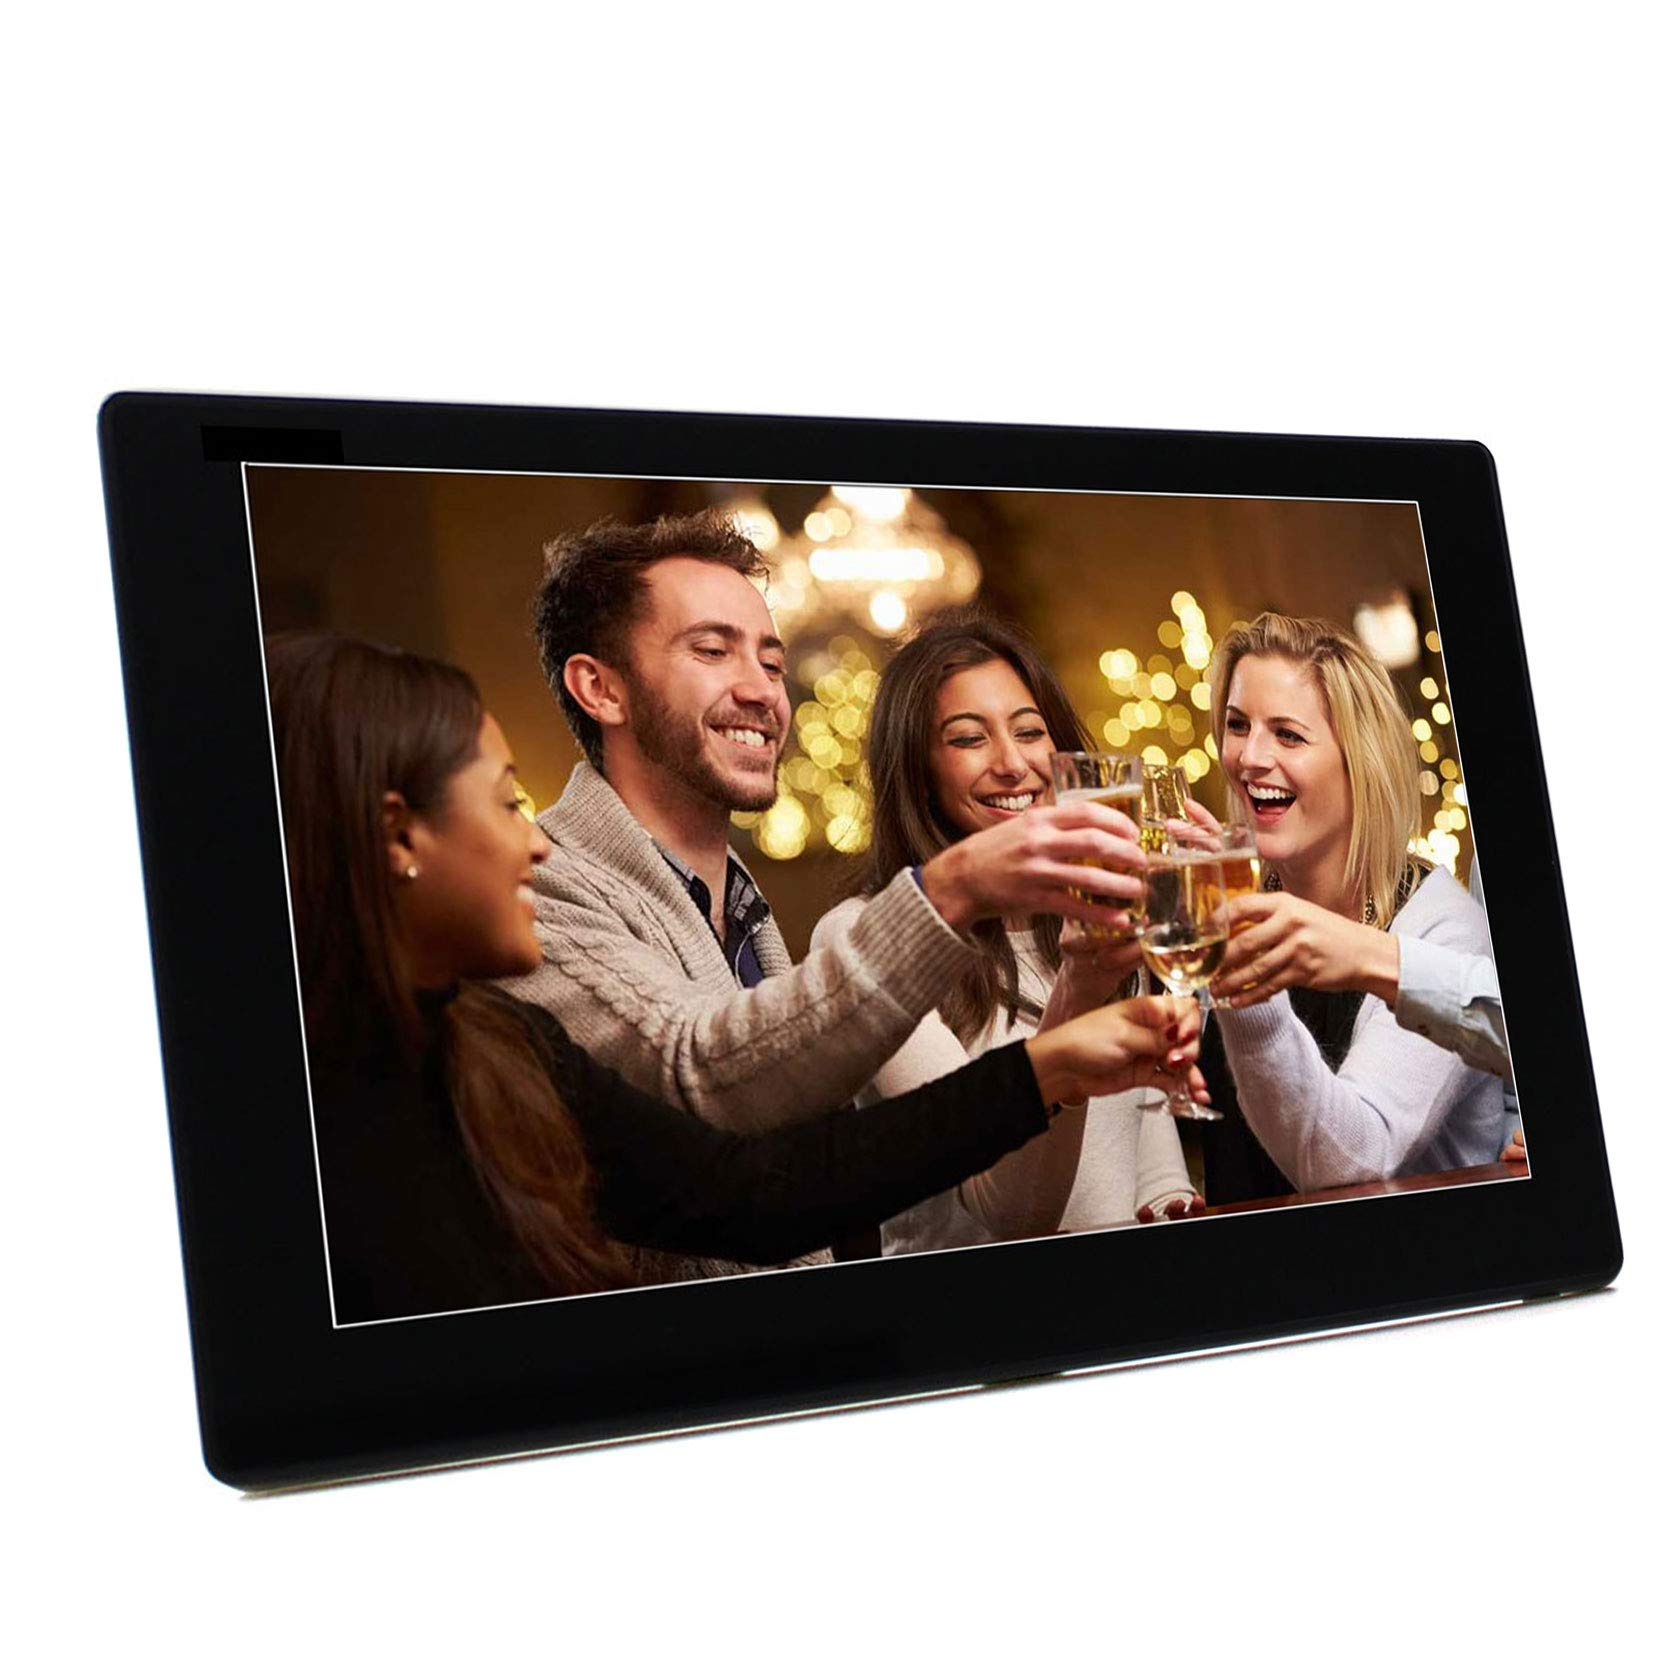 Esmartness 10 Inch WiFi Digital Photo Frame with IPS 1280x800 Display, Touch Screen, Built-in 8G Storage and Max External 64G Storage, Music Video Player Large Smart Digital Picture Frame (Black) by Esmartness (Image #6)